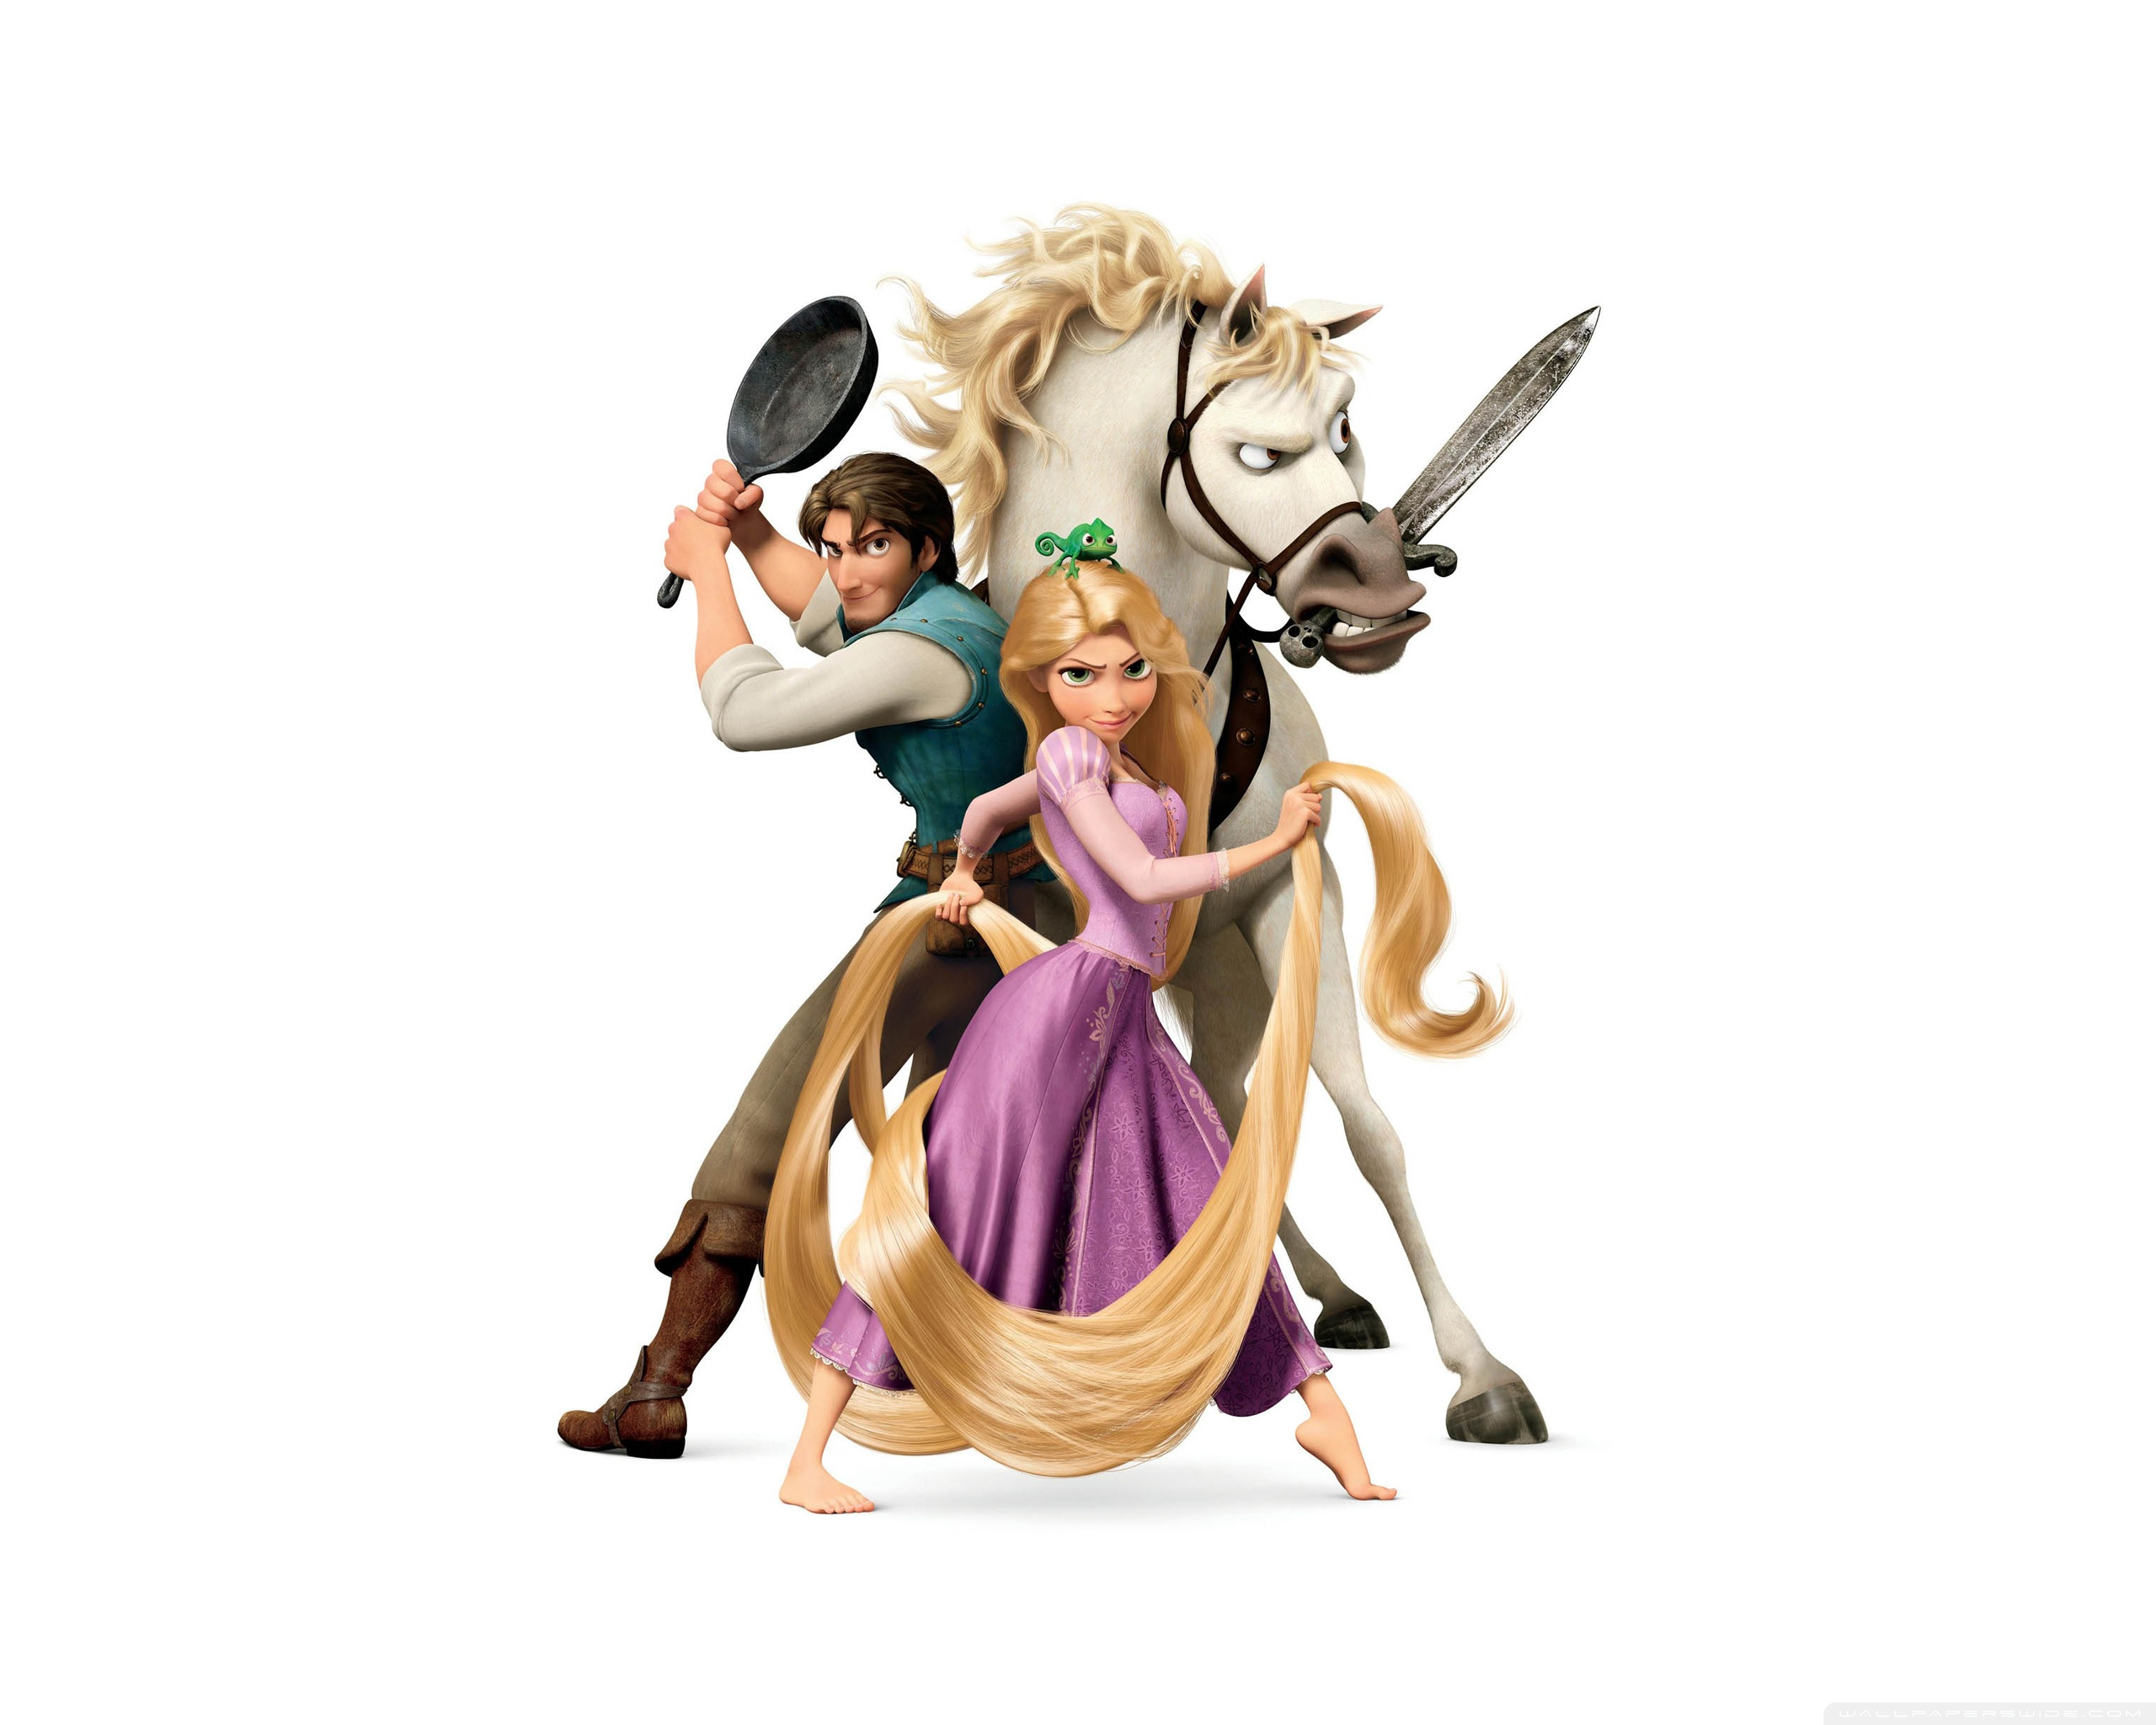 WallpapersWide com | Tangled HD Desktop Wallpapers for Widescreen